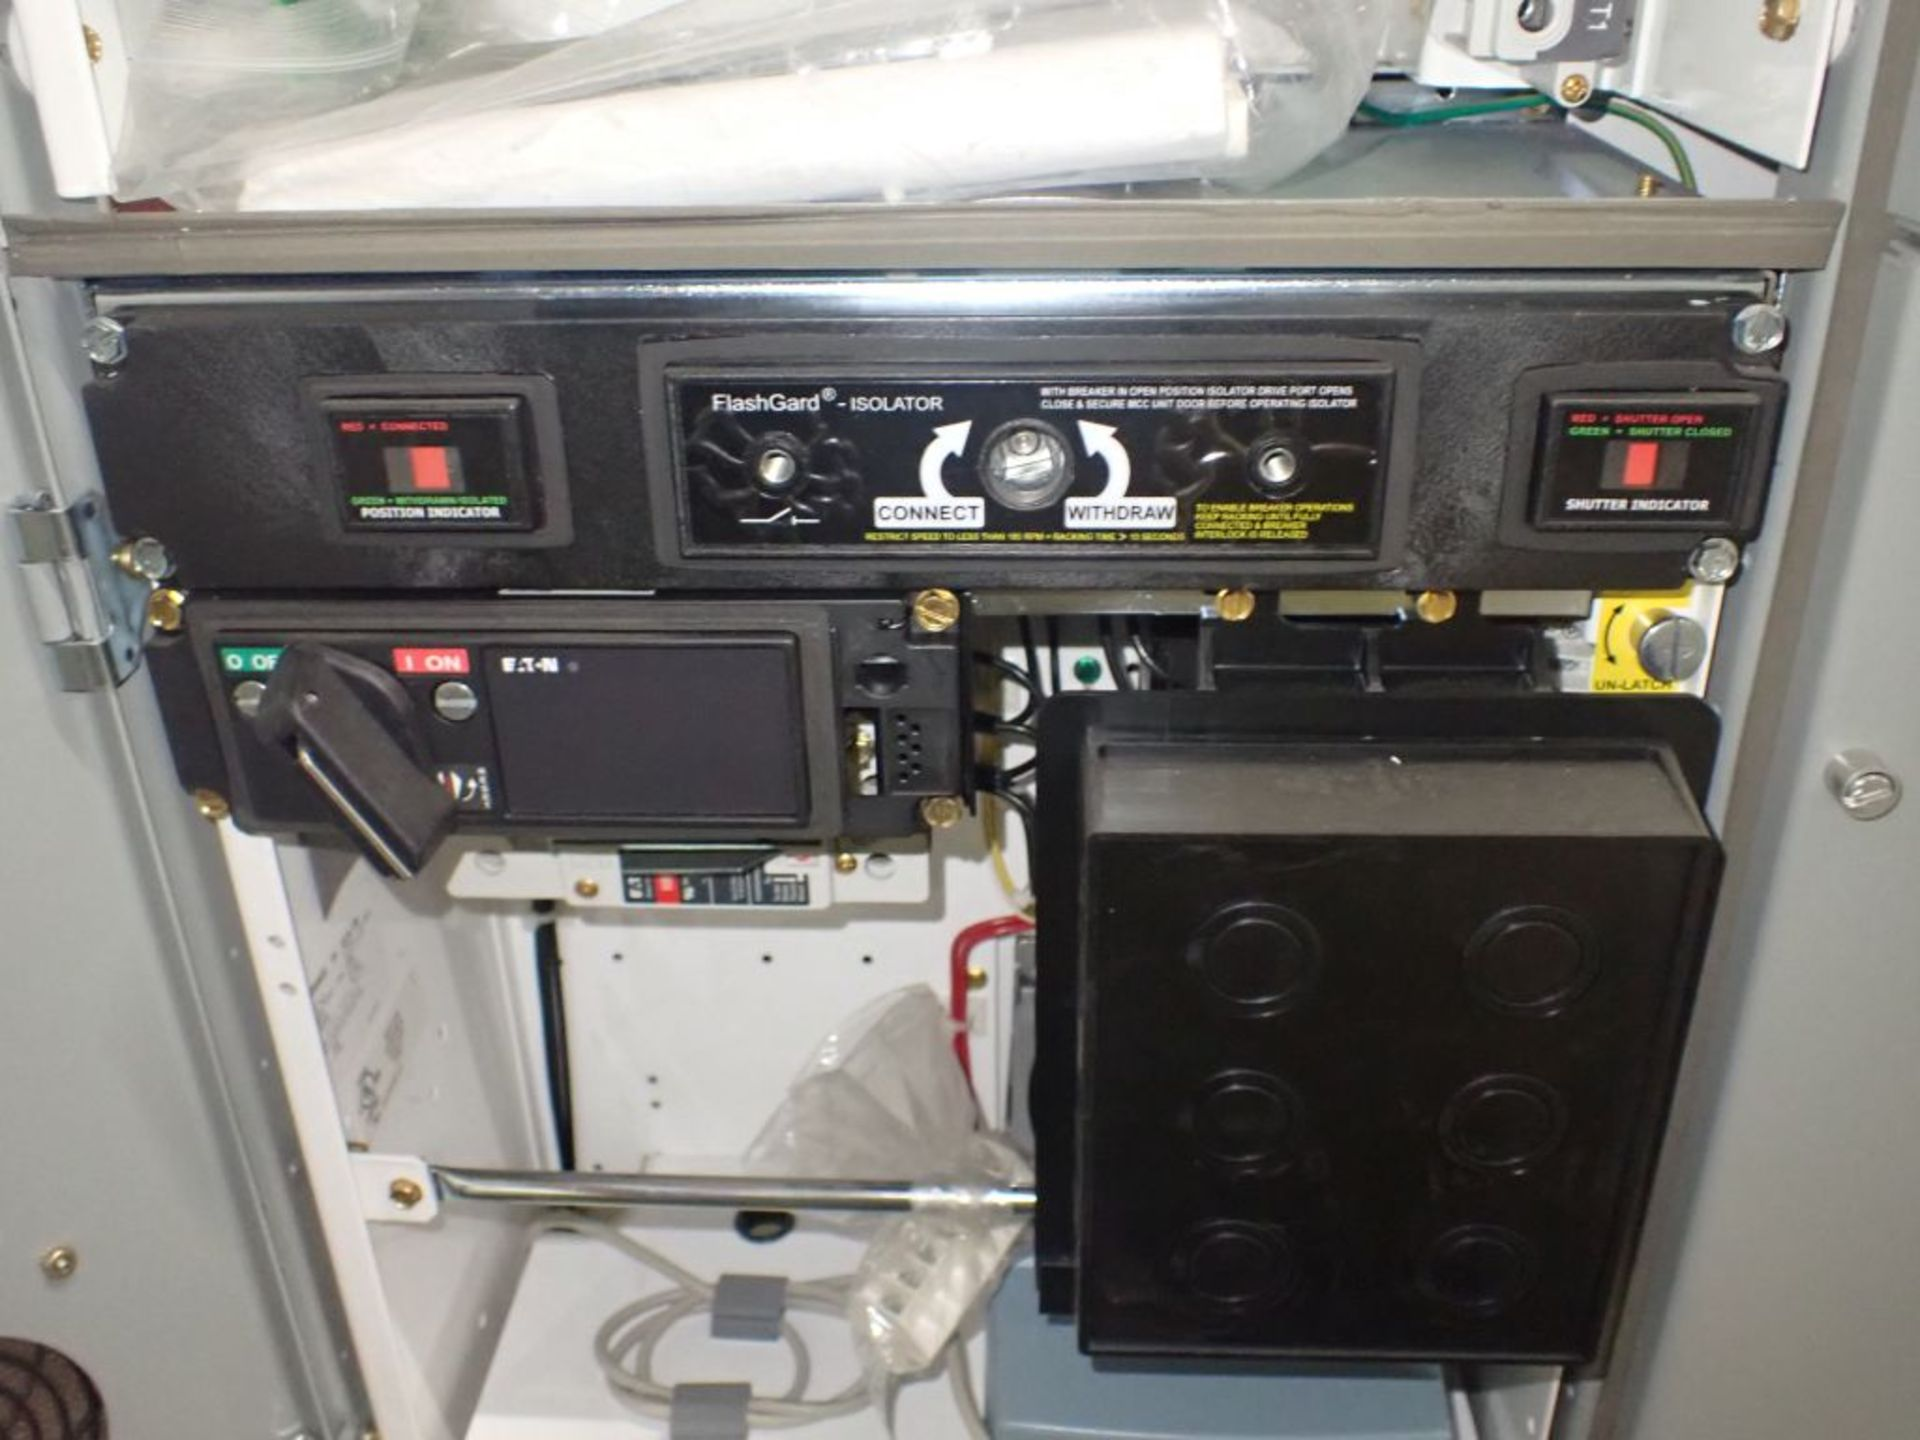 Eaton Freedom 2100 Series Motor Control Center | (2) F206-7A-10HP; (3) F206-15A-10HP; (1) FDRB-100A; - Image 24 of 87